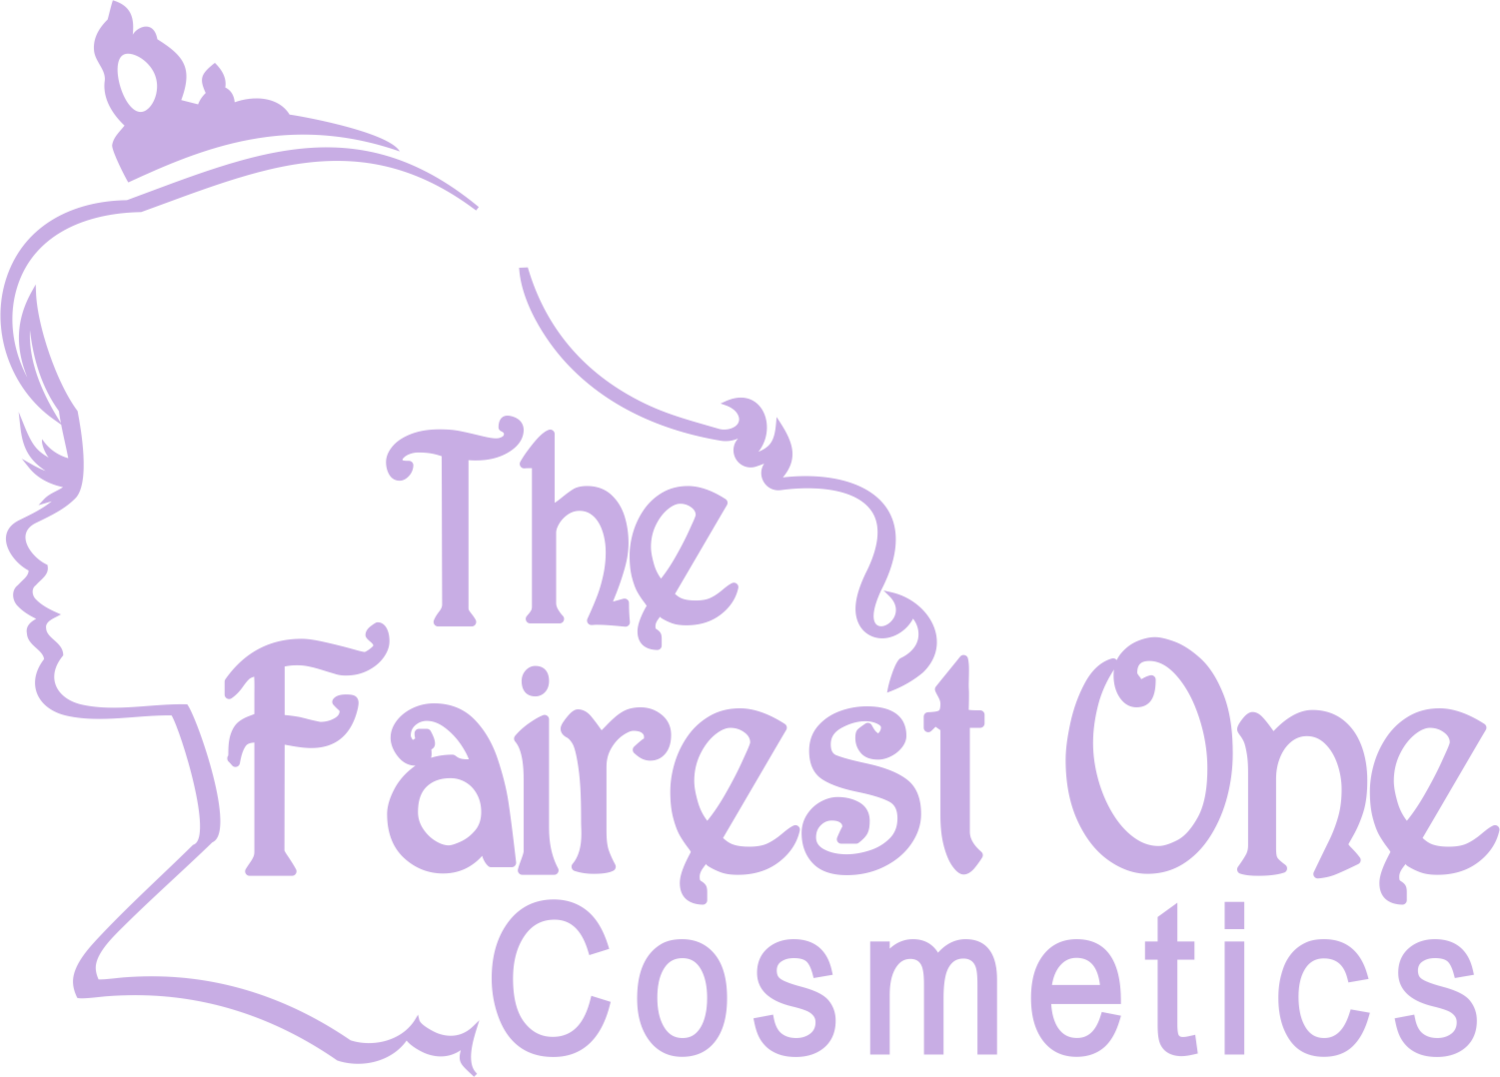 The Fairest One Cosmetics